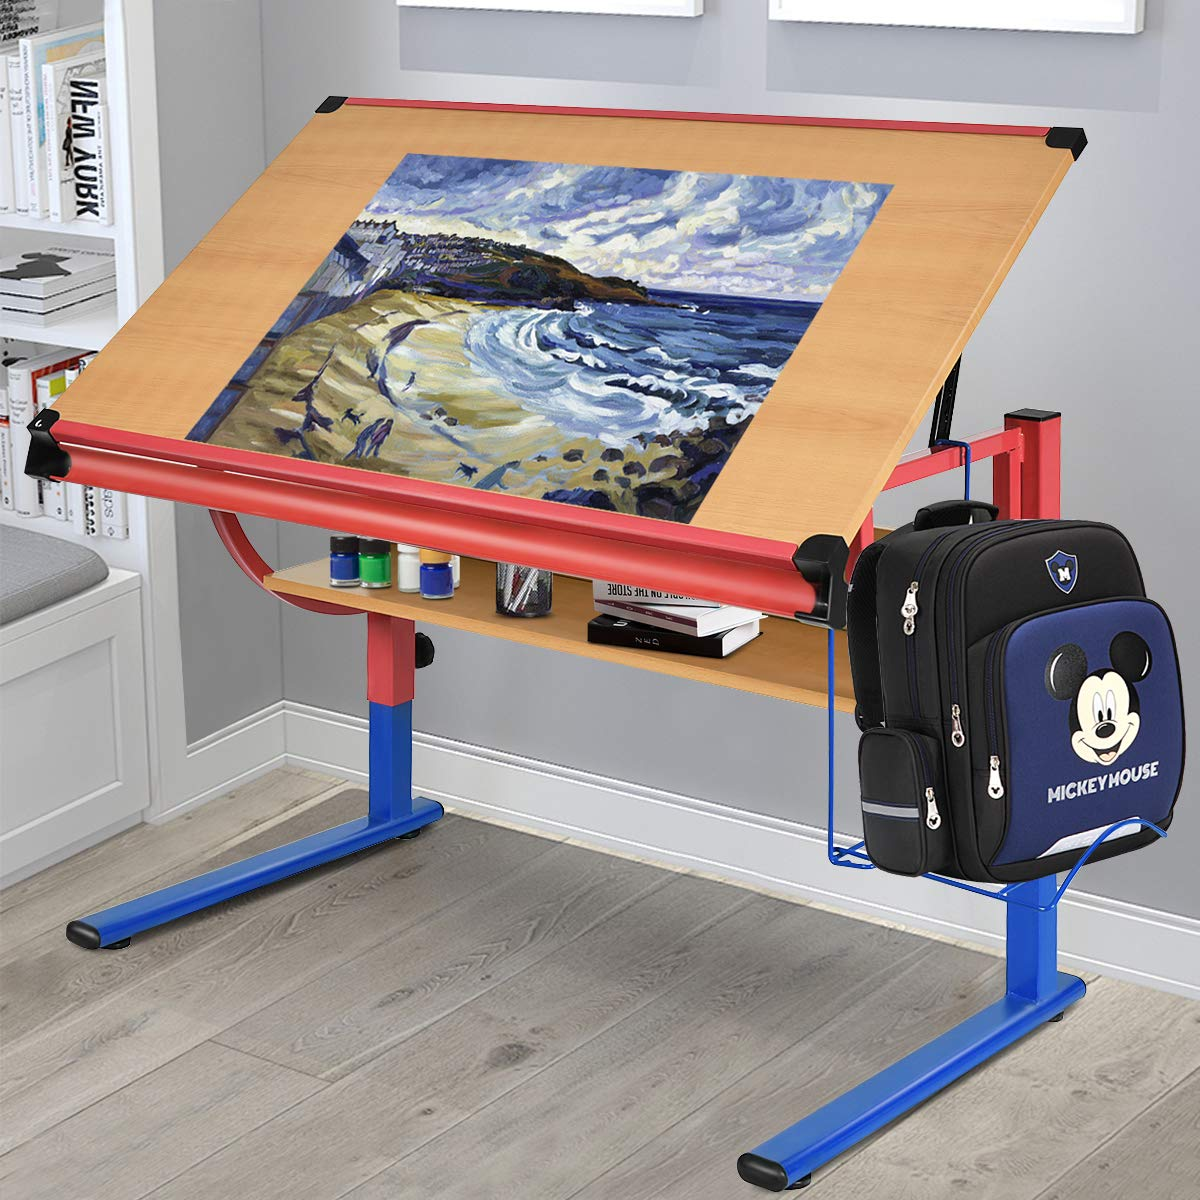 Tangkula Drawing Desk Adjustable Drafting Table Art & Craft Hobby Studio Home Office Furniture